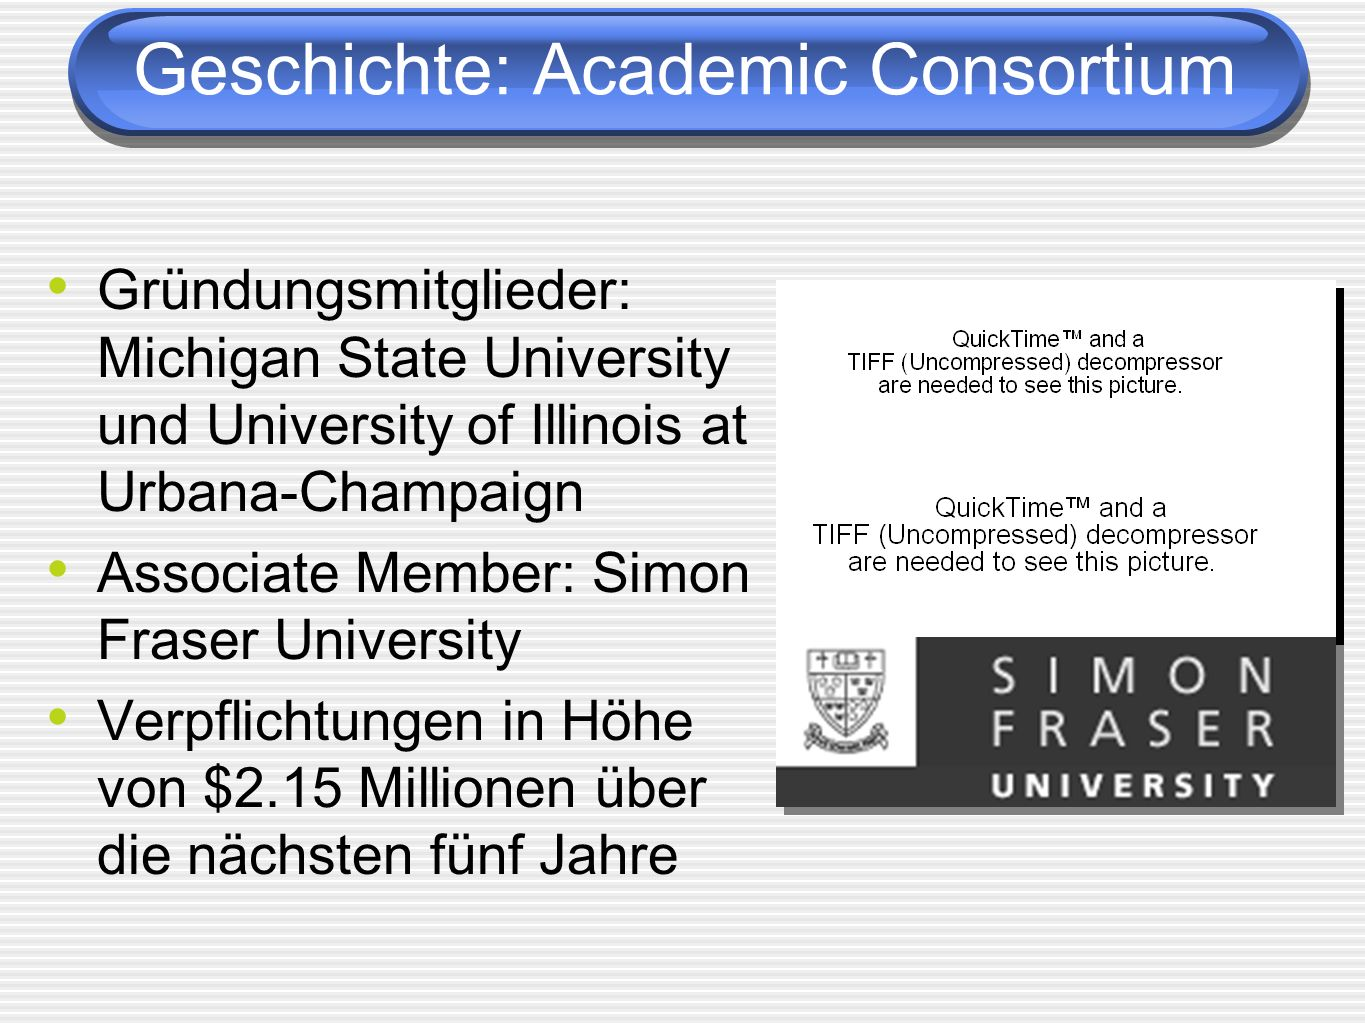 Geschichte: Academic Consortium Gründungsmitglieder: Michigan State University und University of Illinois at Urbana-Champaign Associate Member: Simon